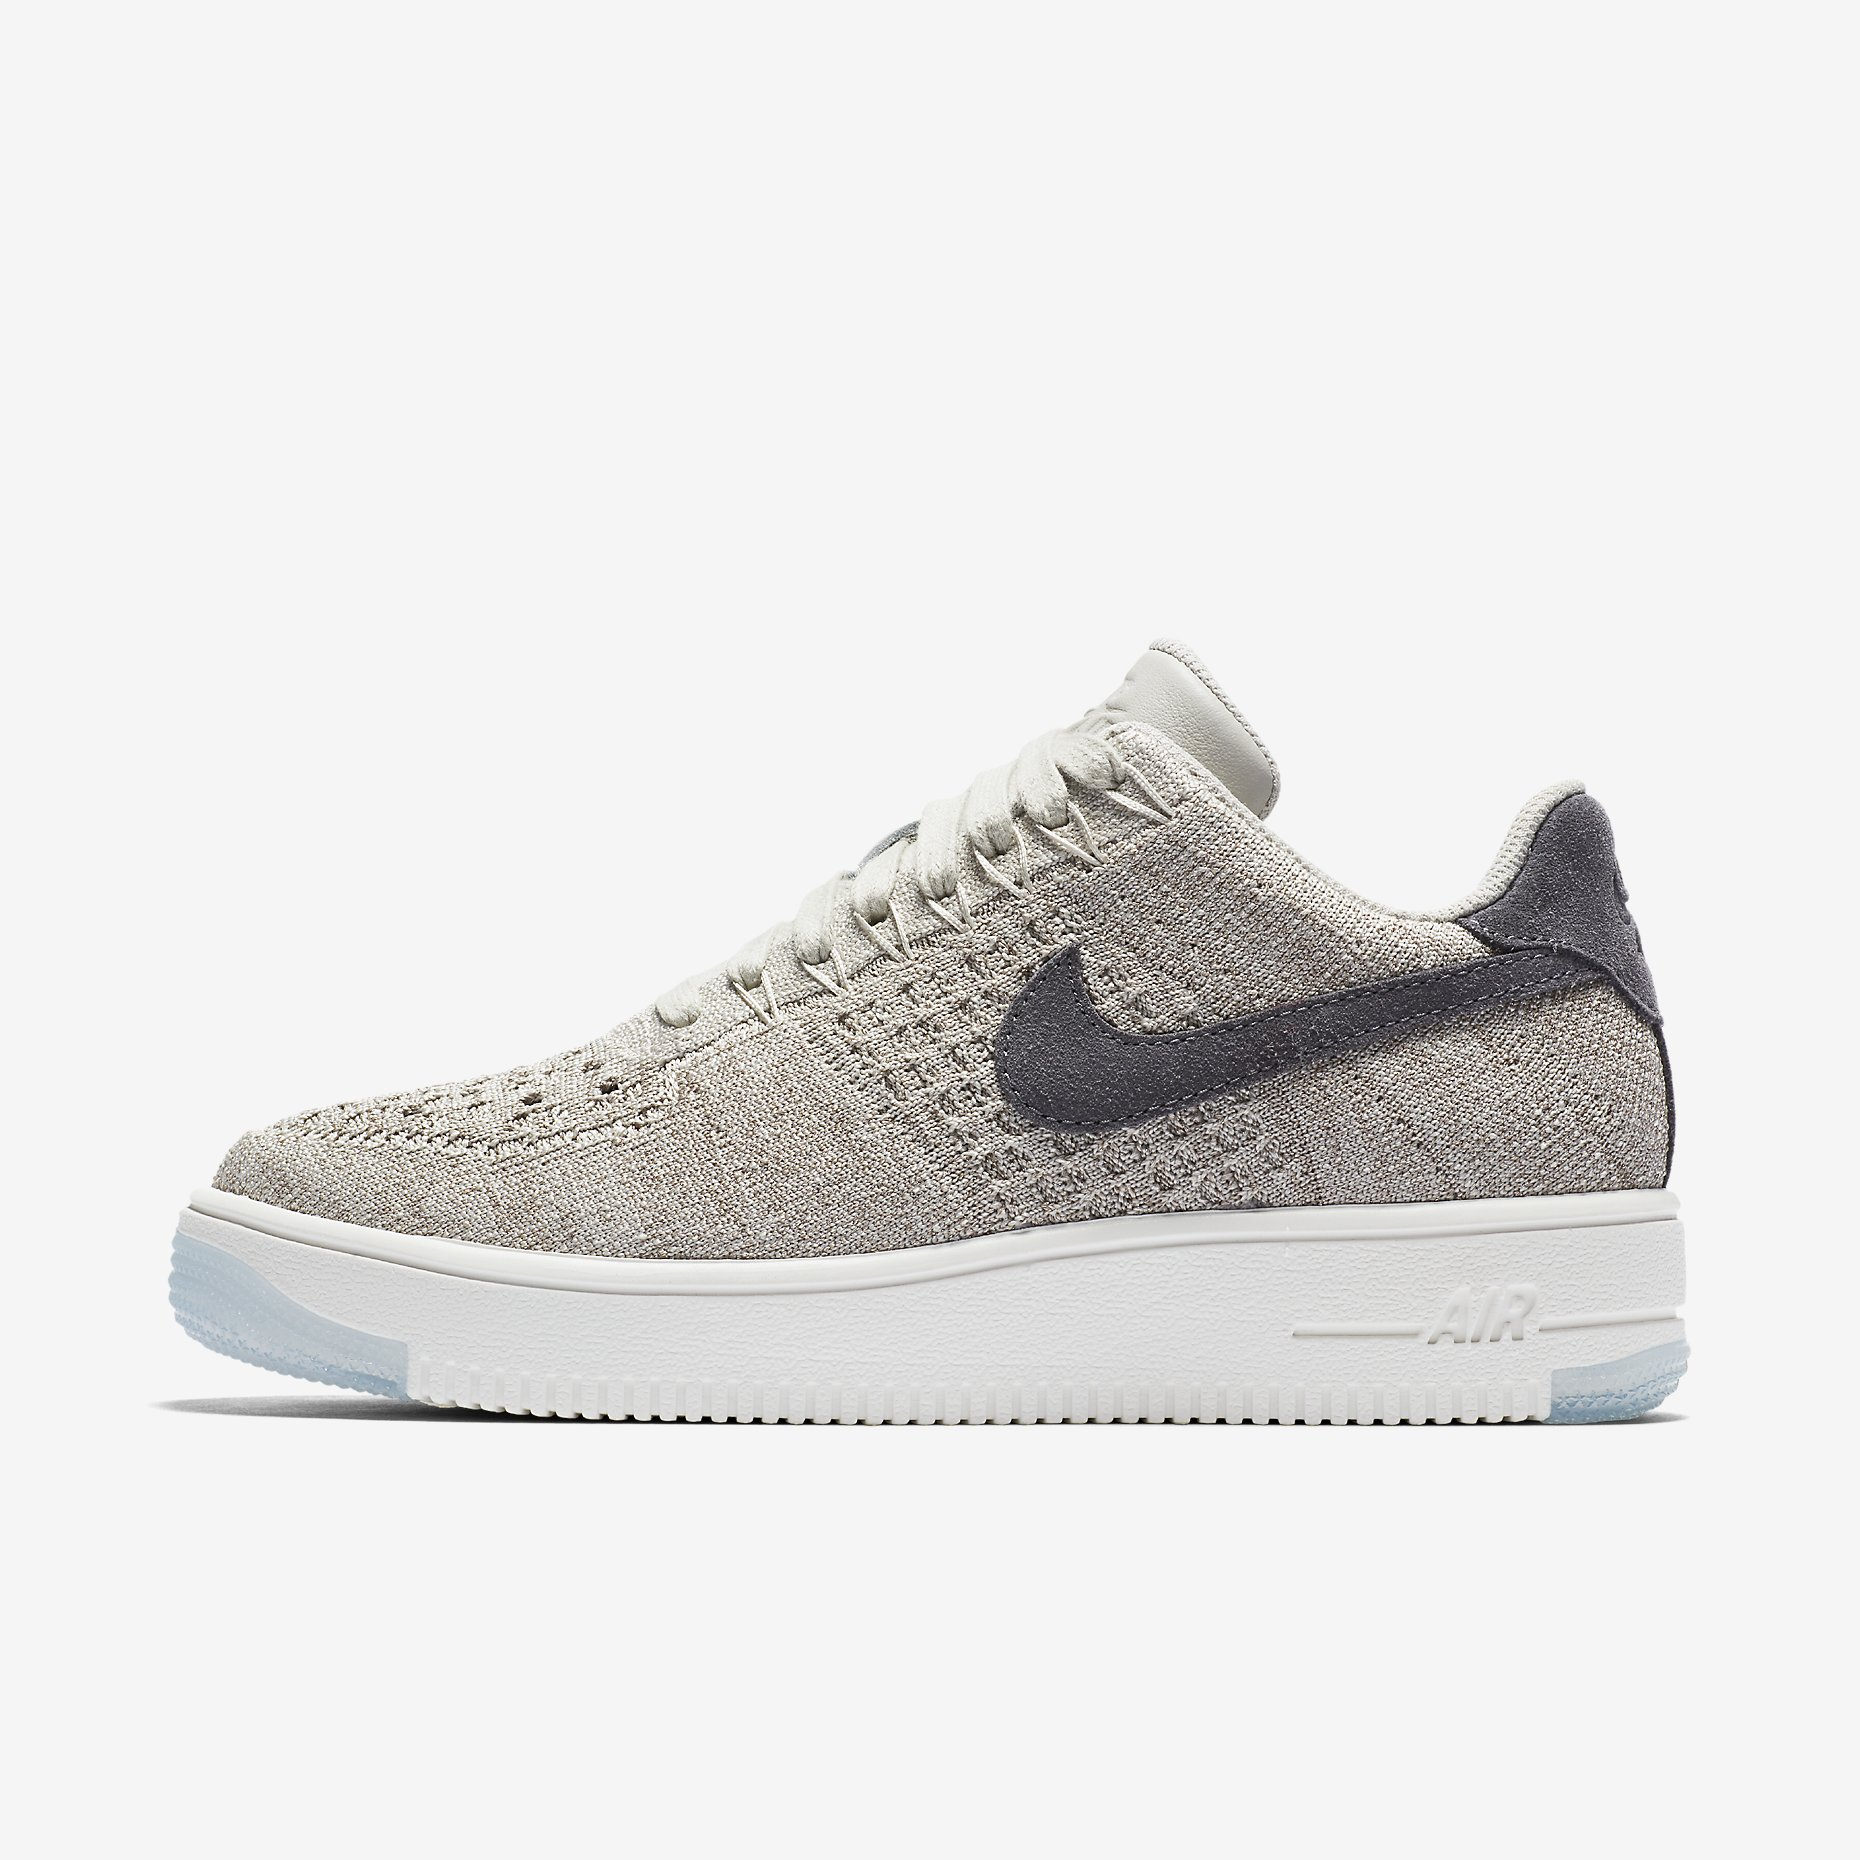 new concept 98aab 10f4a Air Force 1 Flyknit Low